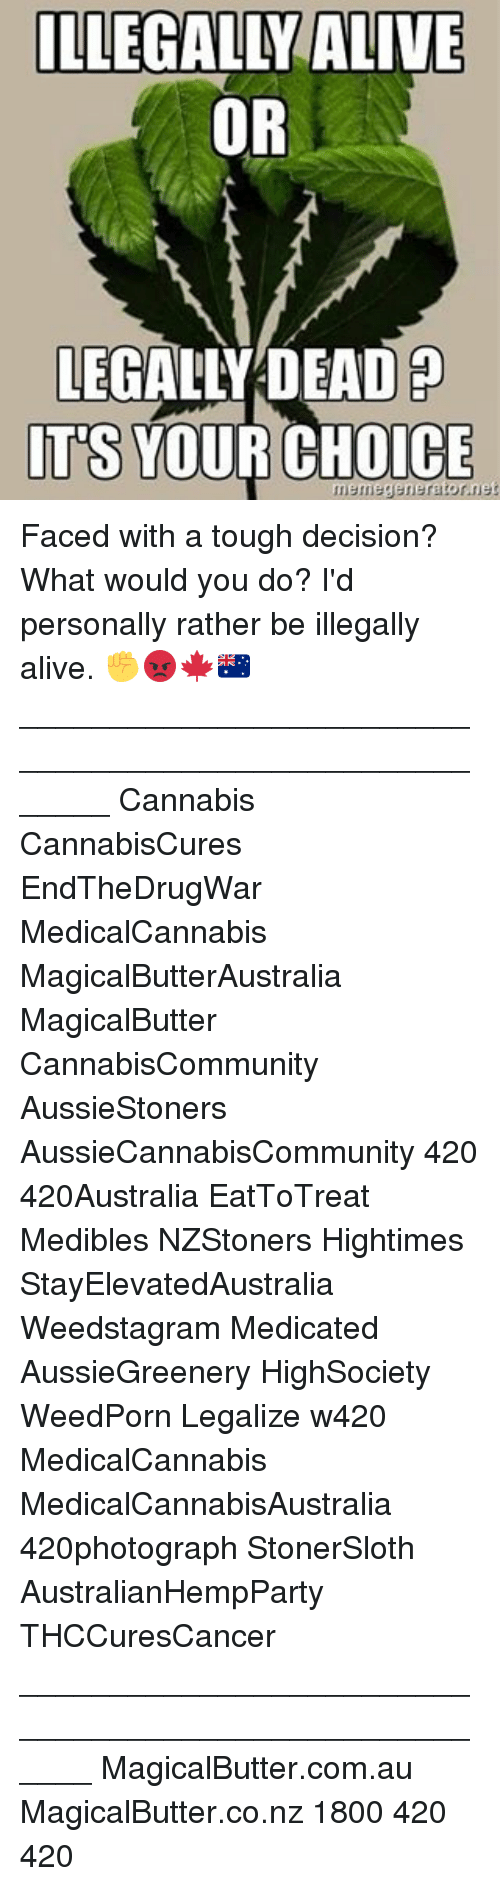 Choices Meme: ILLEGALLY ALIVE  OR  LEGALLY DEAD  ITS  YOUR CHOICE  meme generator net Faced with a tough decision? What would you do? I'd personally rather be illegally alive. ✊️😡🍁🇦🇺 _______________________________________________________ Cannabis CannabisCures EndTheDrugWar MedicalCannabis MagicalButterAustralia MagicalButter CannabisCommunity AussieStoners AussieCannabisCommunity 420 420Australia EatToTreat Medibles NZStoners Hightimes StayElevatedAustralia Weedstagram Medicated AussieGreenery HighSociety WeedPorn Legalize w420 MedicalCannabis MedicalCannabisAustralia 420photograph StonerSloth AustralianHempParty THCCuresCancer ______________________________________________________ MagicalButter.com.au MagicalButter.co.nz 1800 420 420